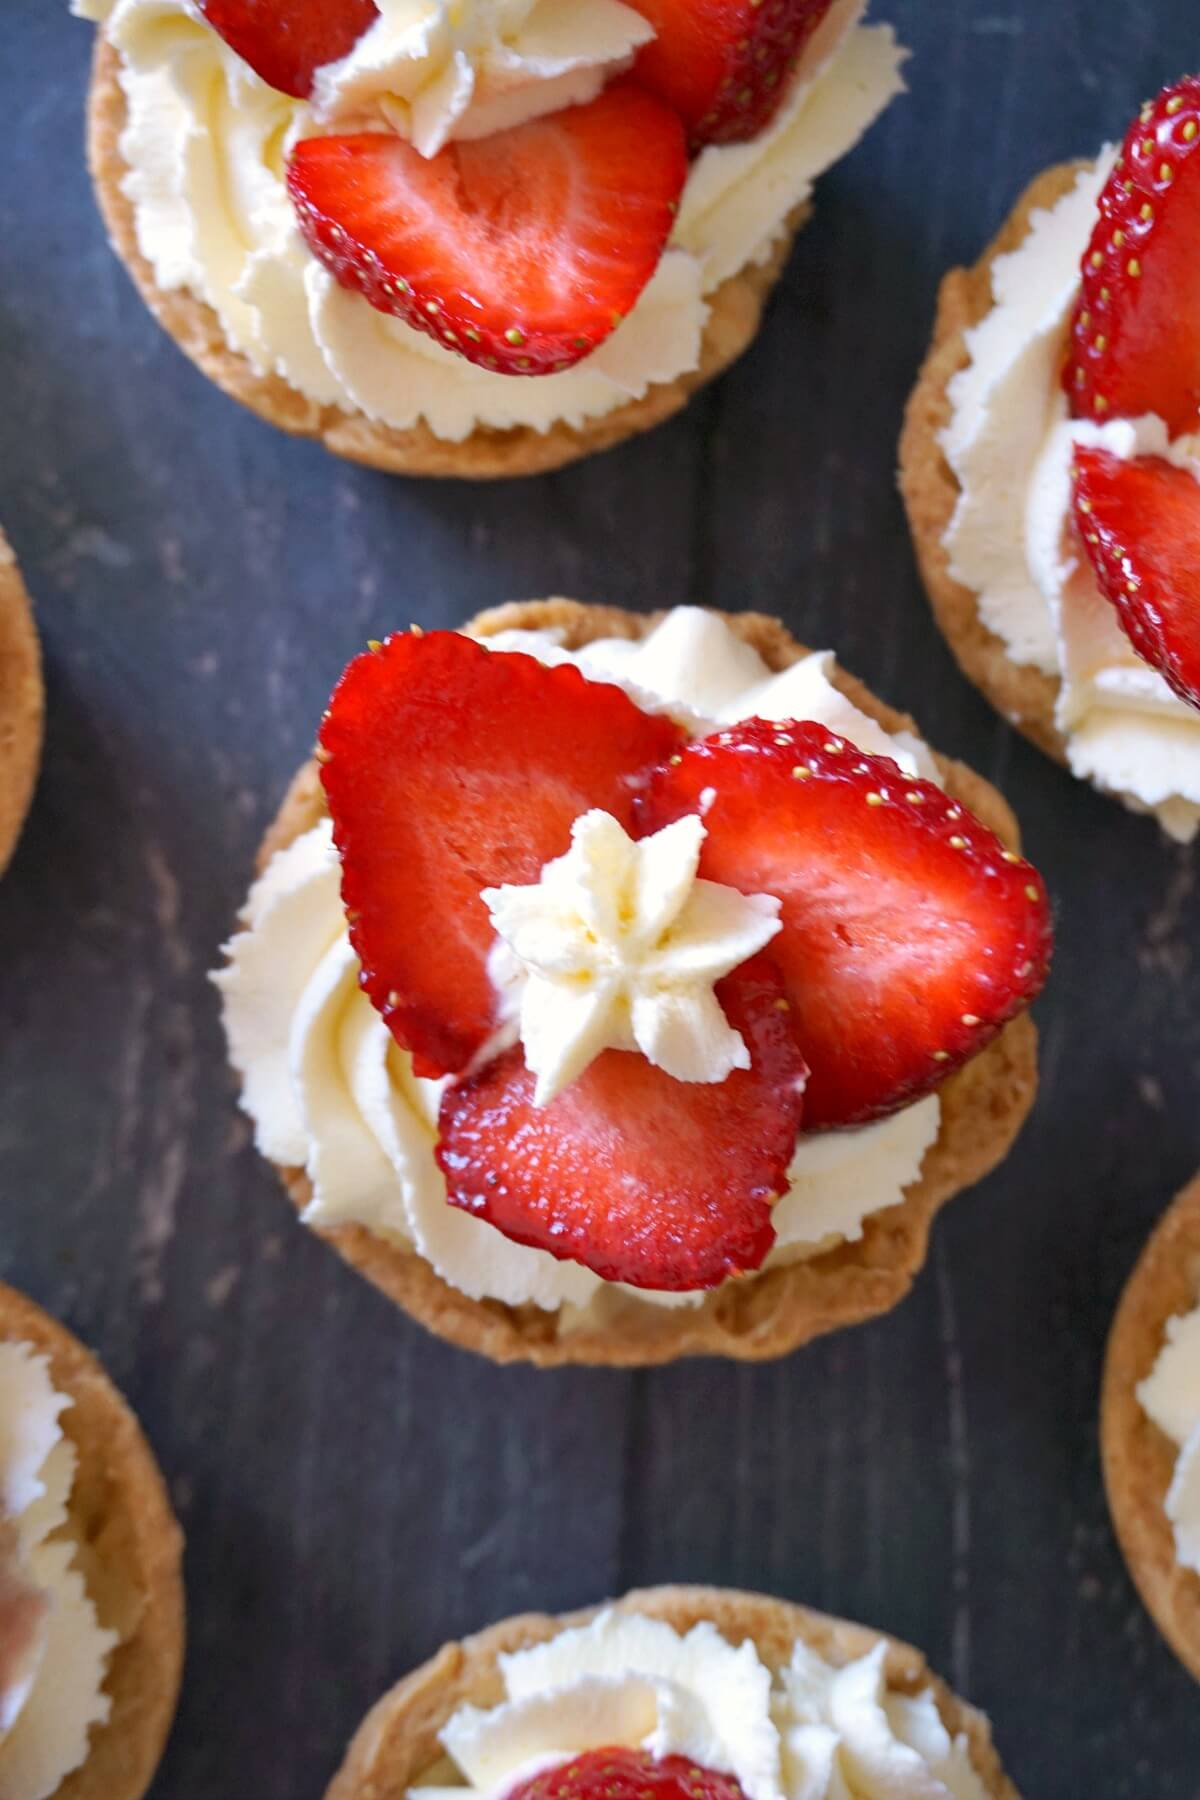 Overhead shoot of mini tarts with strawberry slices and cream